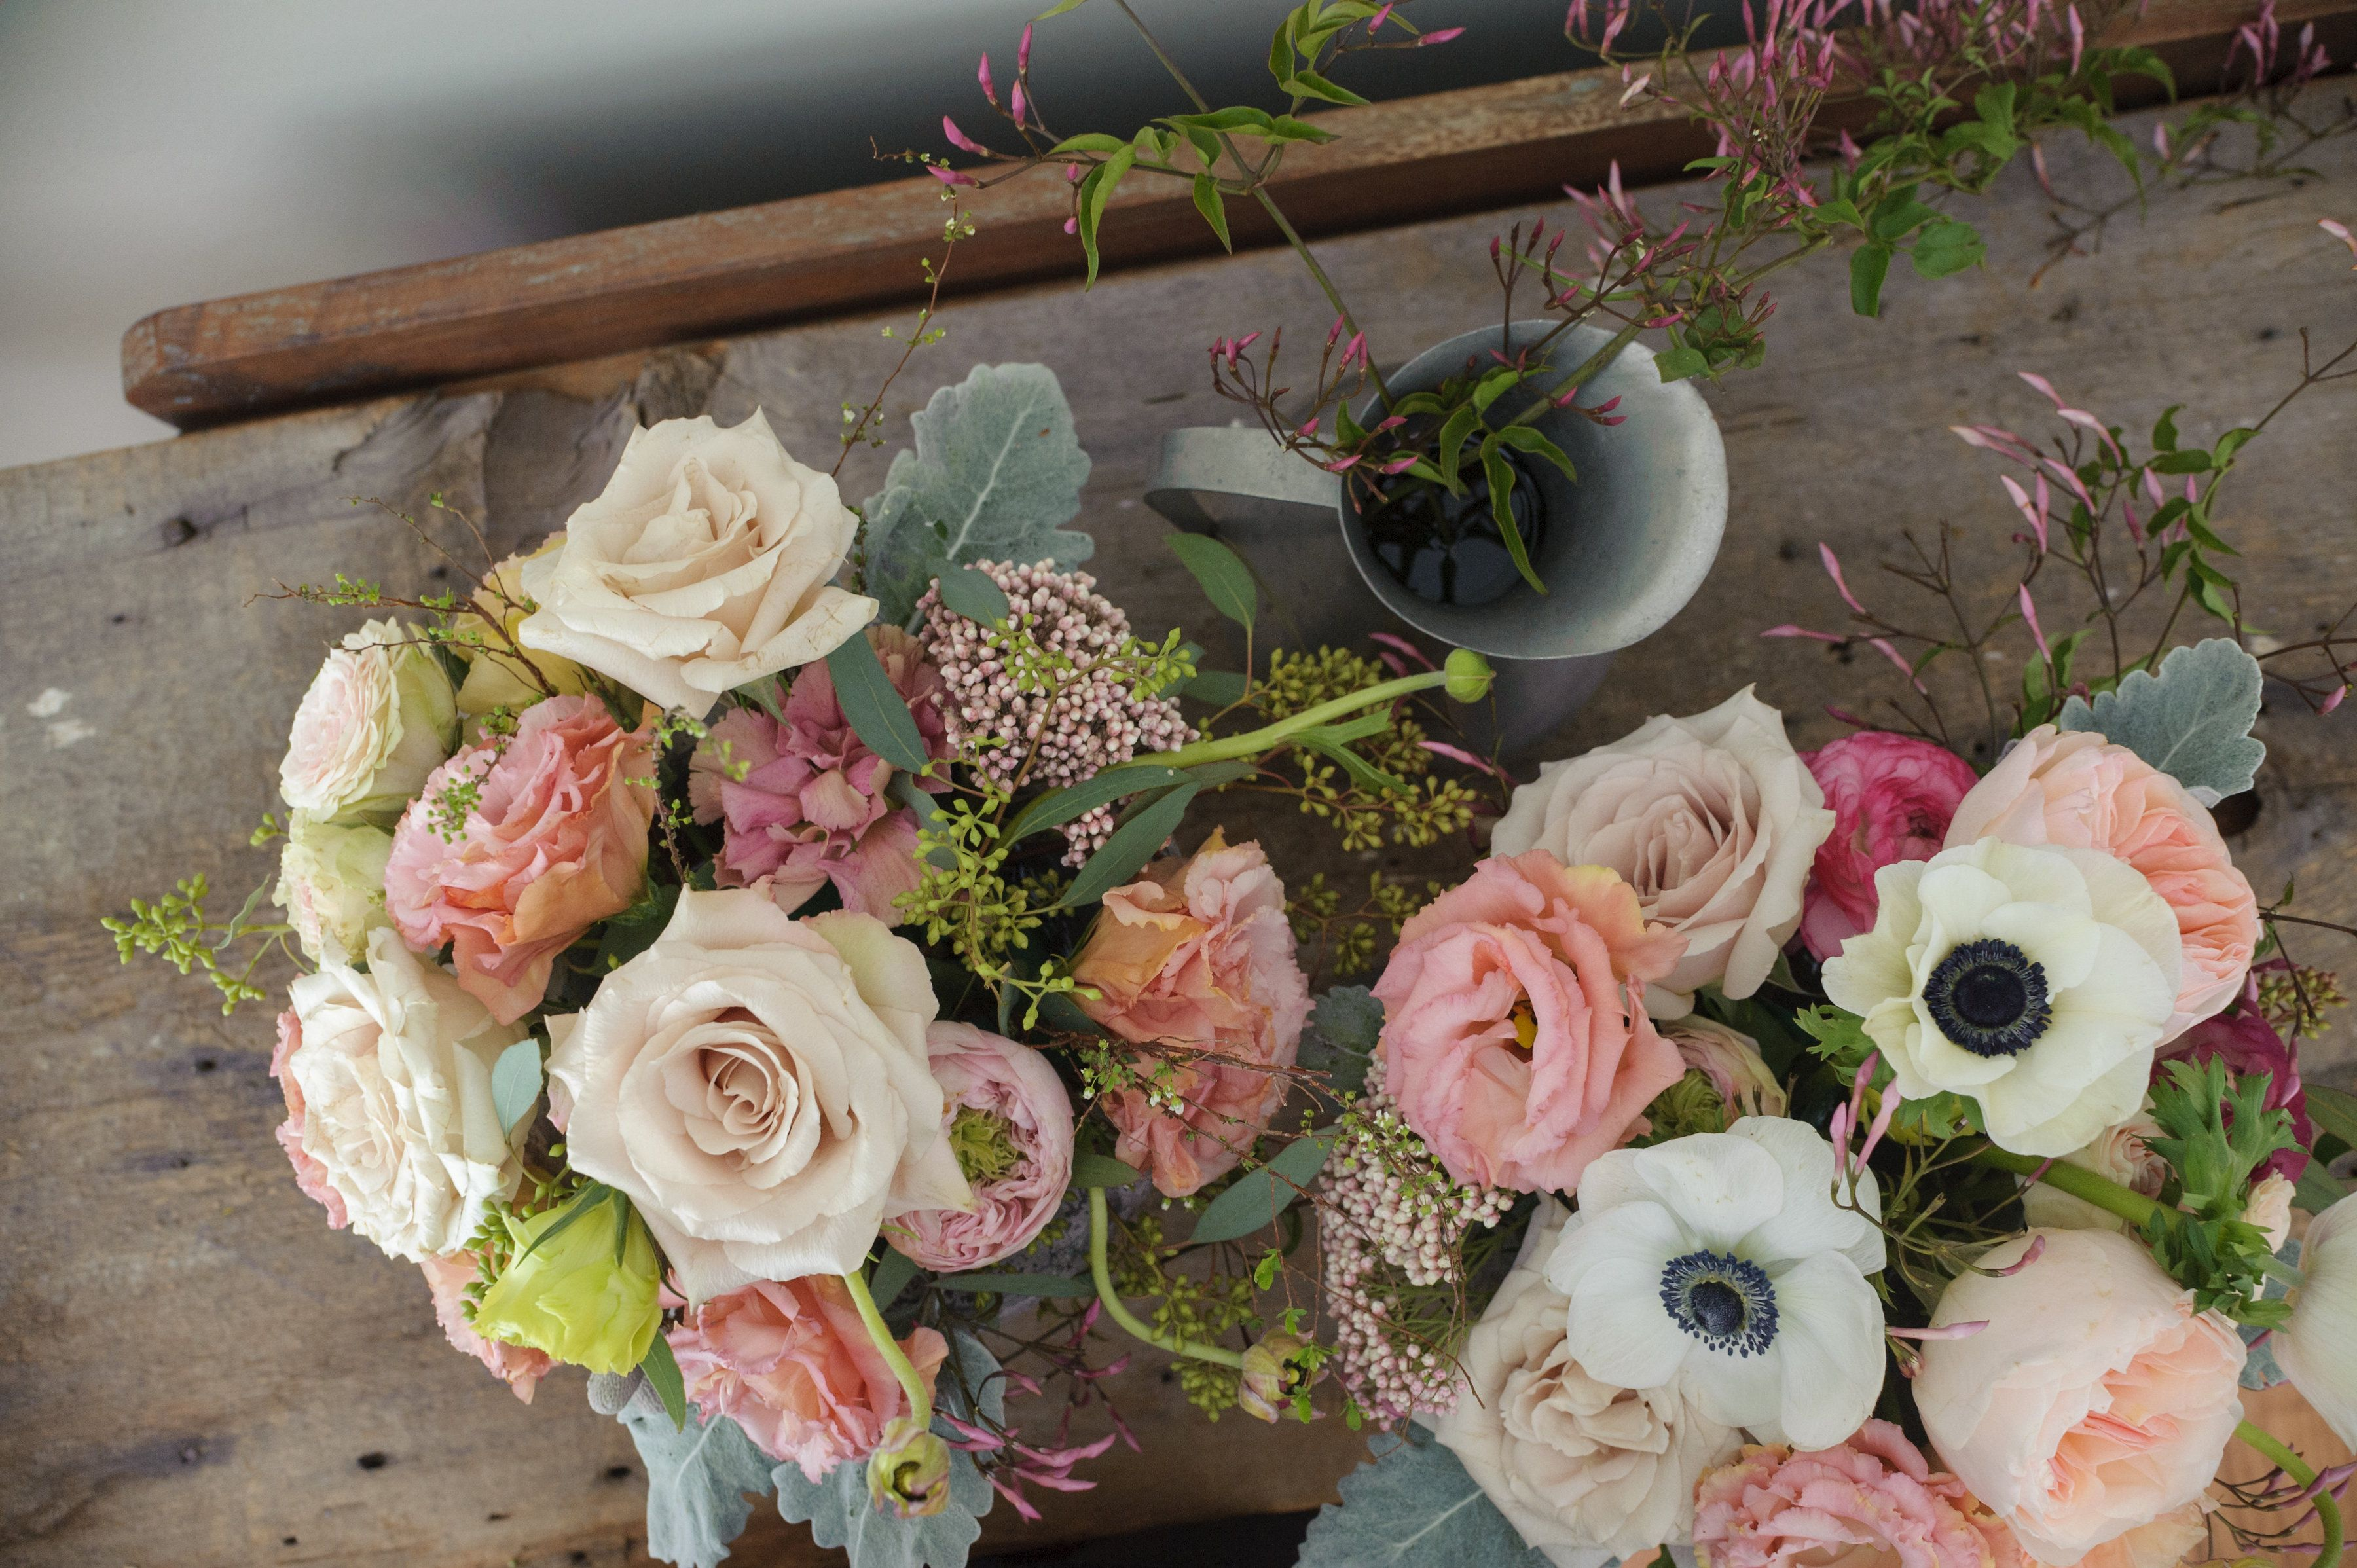 Romatnic Wedding Centerpieces In Blush Peach And White Made With Garden Roses Listhanthus Anemones Ros Wedding Flowers Wedding Florist Wedding Centerpieces